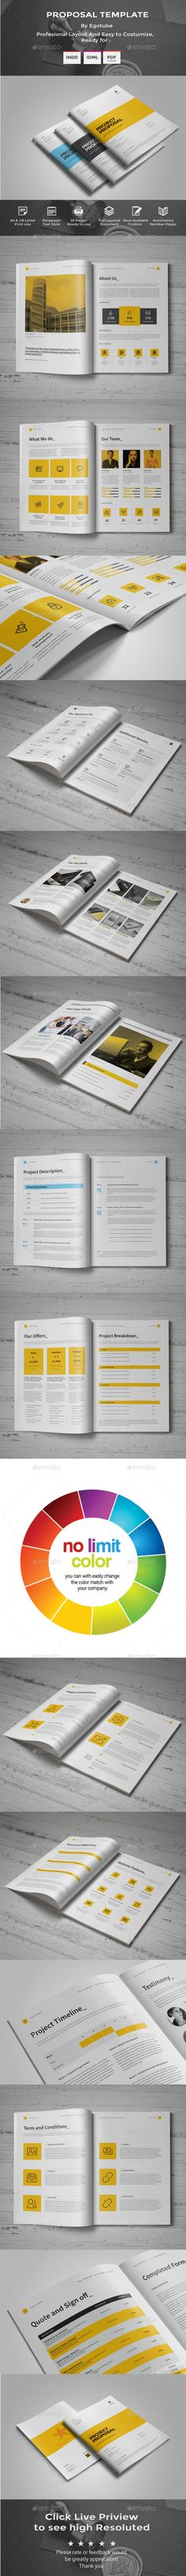 175 Best Proposal Design Images On Pinterest In 2018 Brochure